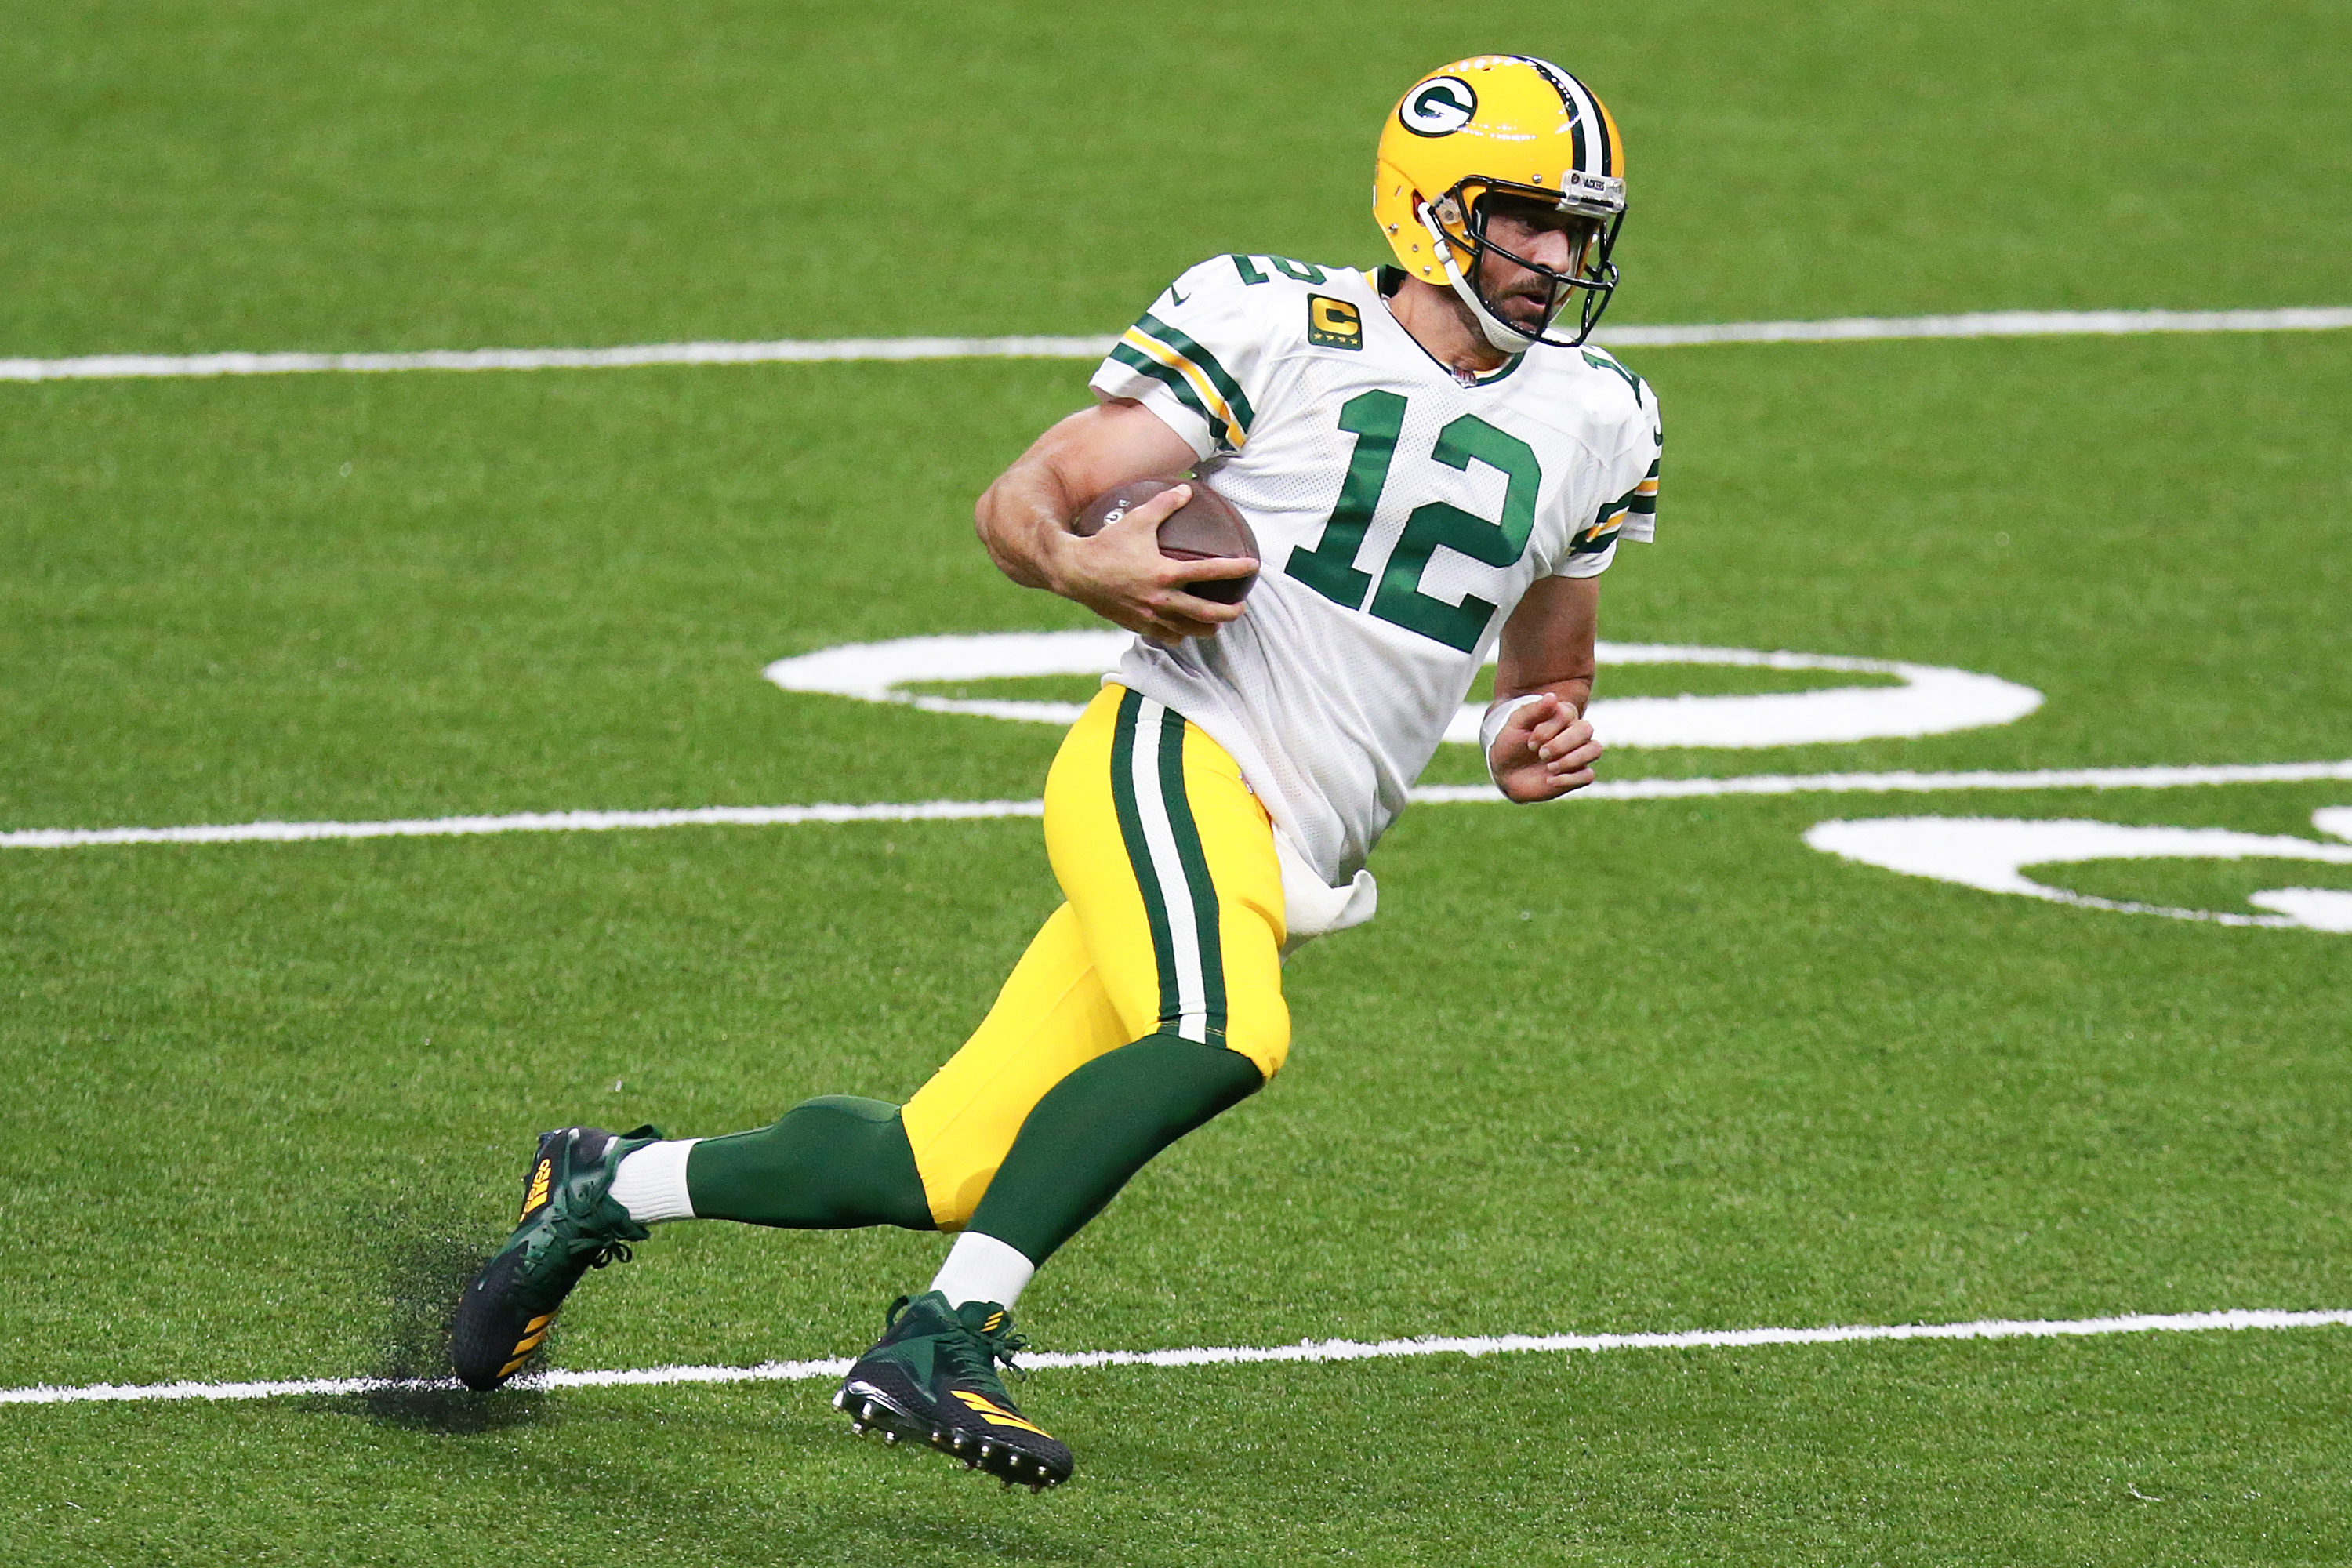 Aaron Rodgers and the Green Bay Packers are setting records.